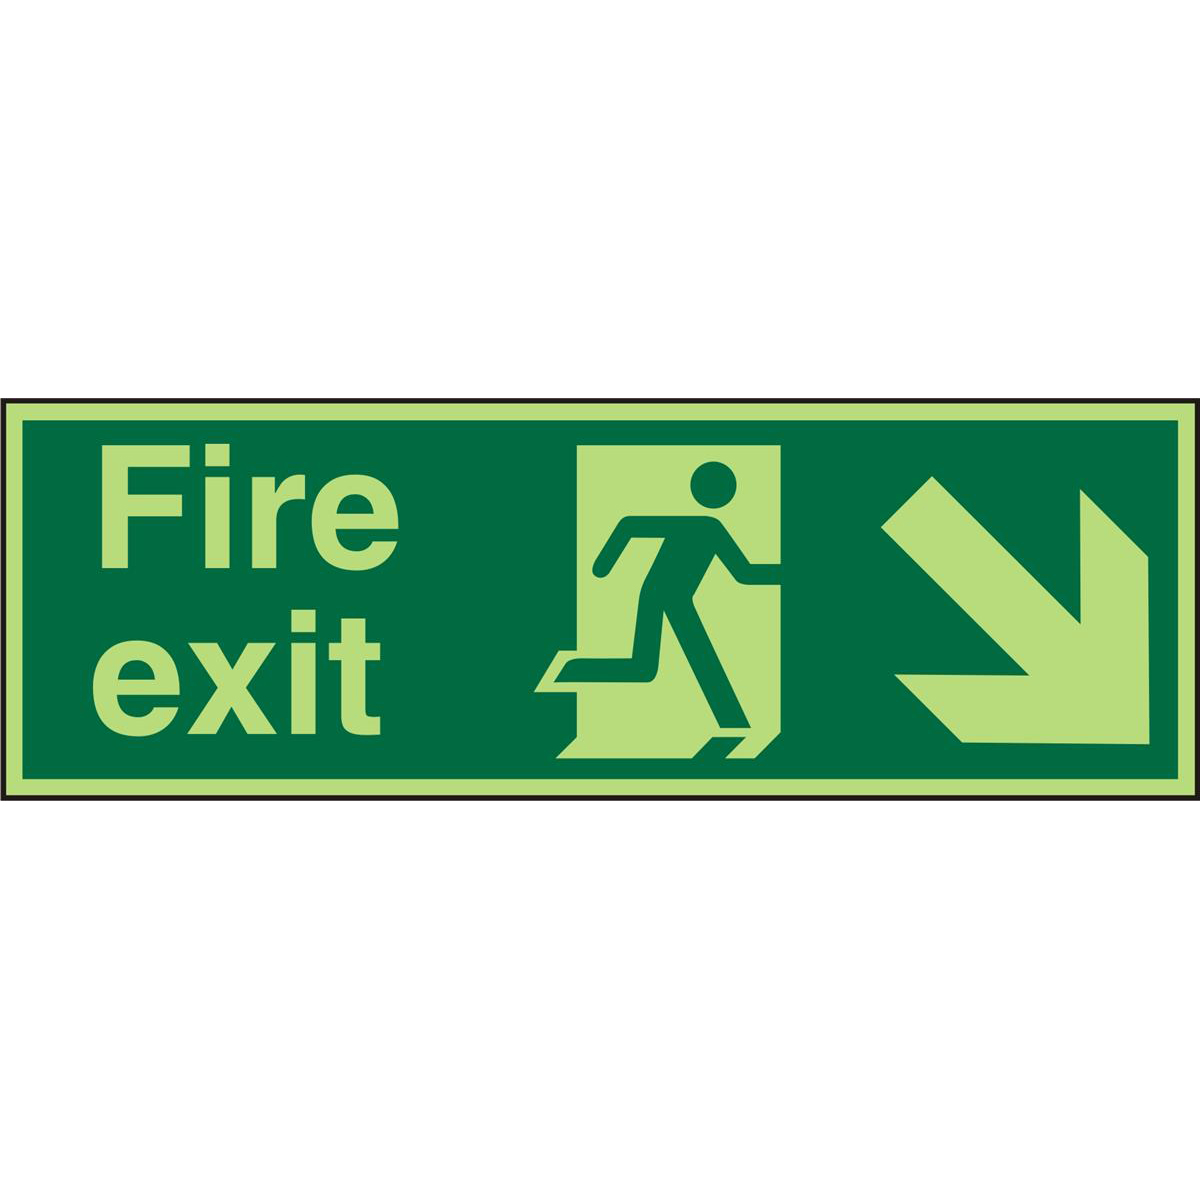 PhotolumSign 600x200 S/A FireExit Man Running Right&Arrow Ref PSP123SAV600x200 Up to 10 Day Leadtime